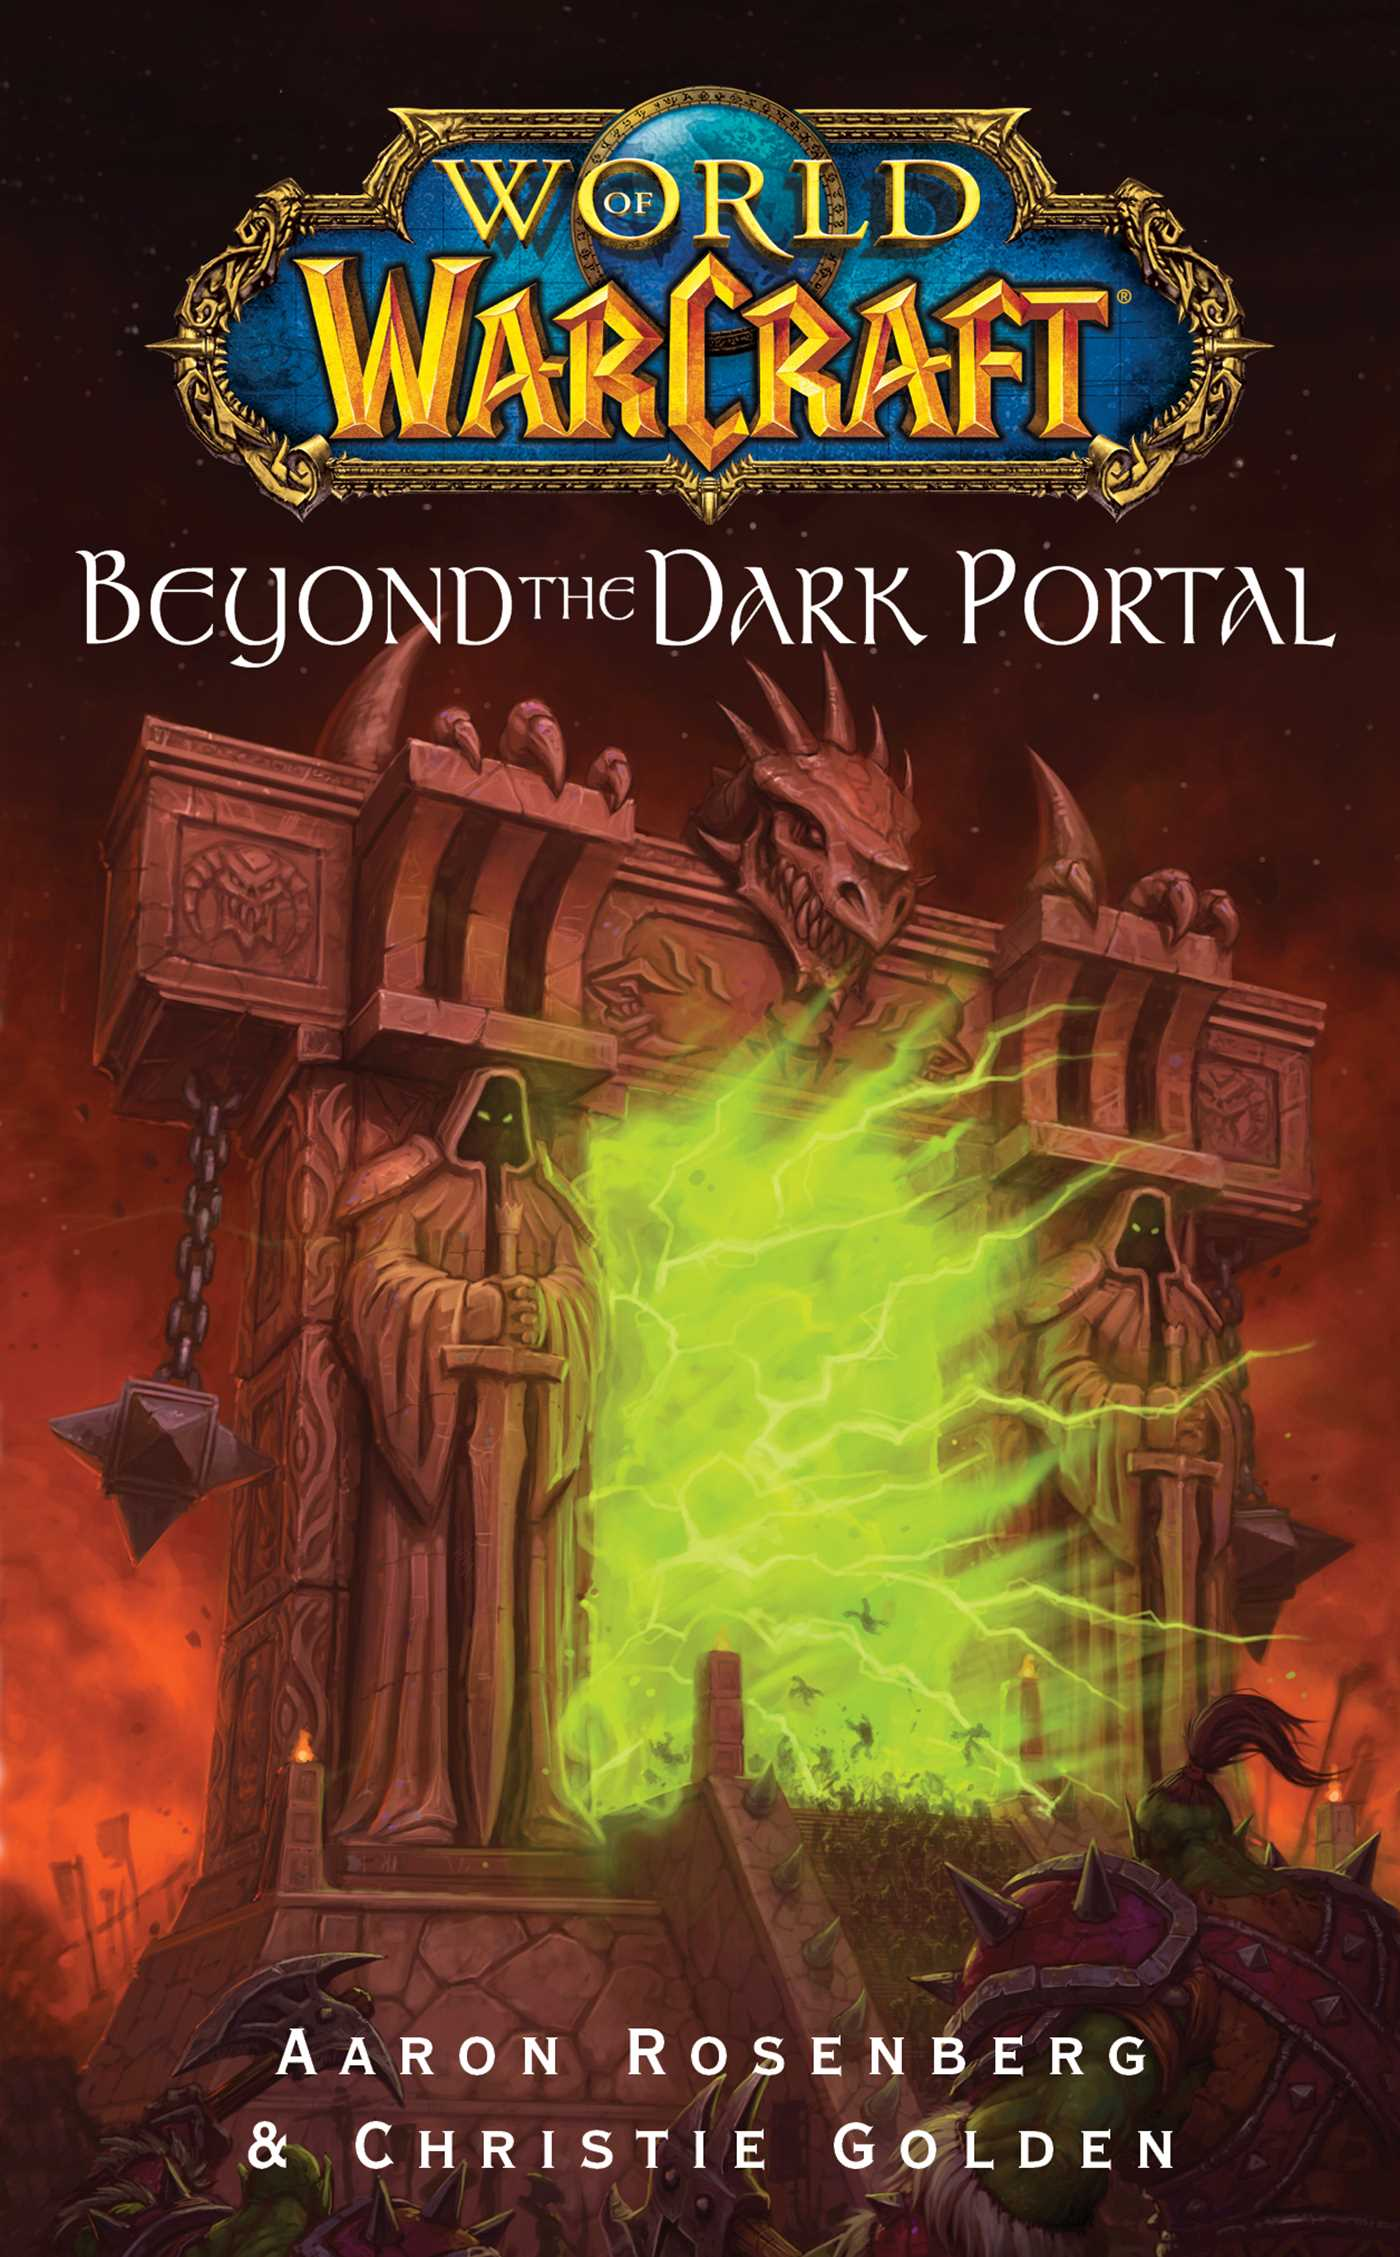 World of warcraft beyond the dark portal 9781416550860 hr